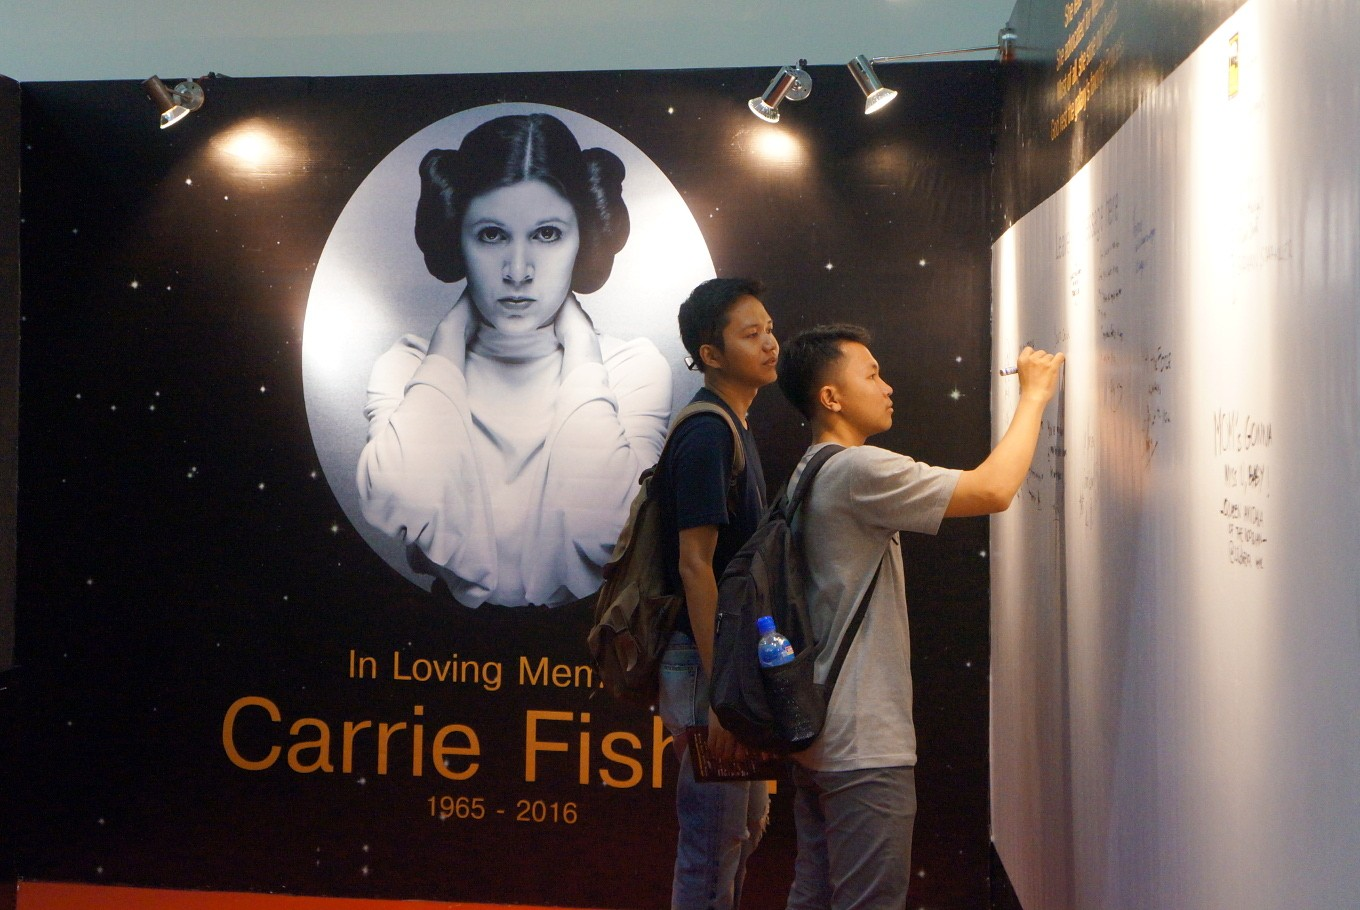 A special area to commemorate the late Carrie Fisher was provided near the Star Wars booth at the 2017 Indonesia Comic Con. Visitors were allowed to write messages for Fisher on a wall.